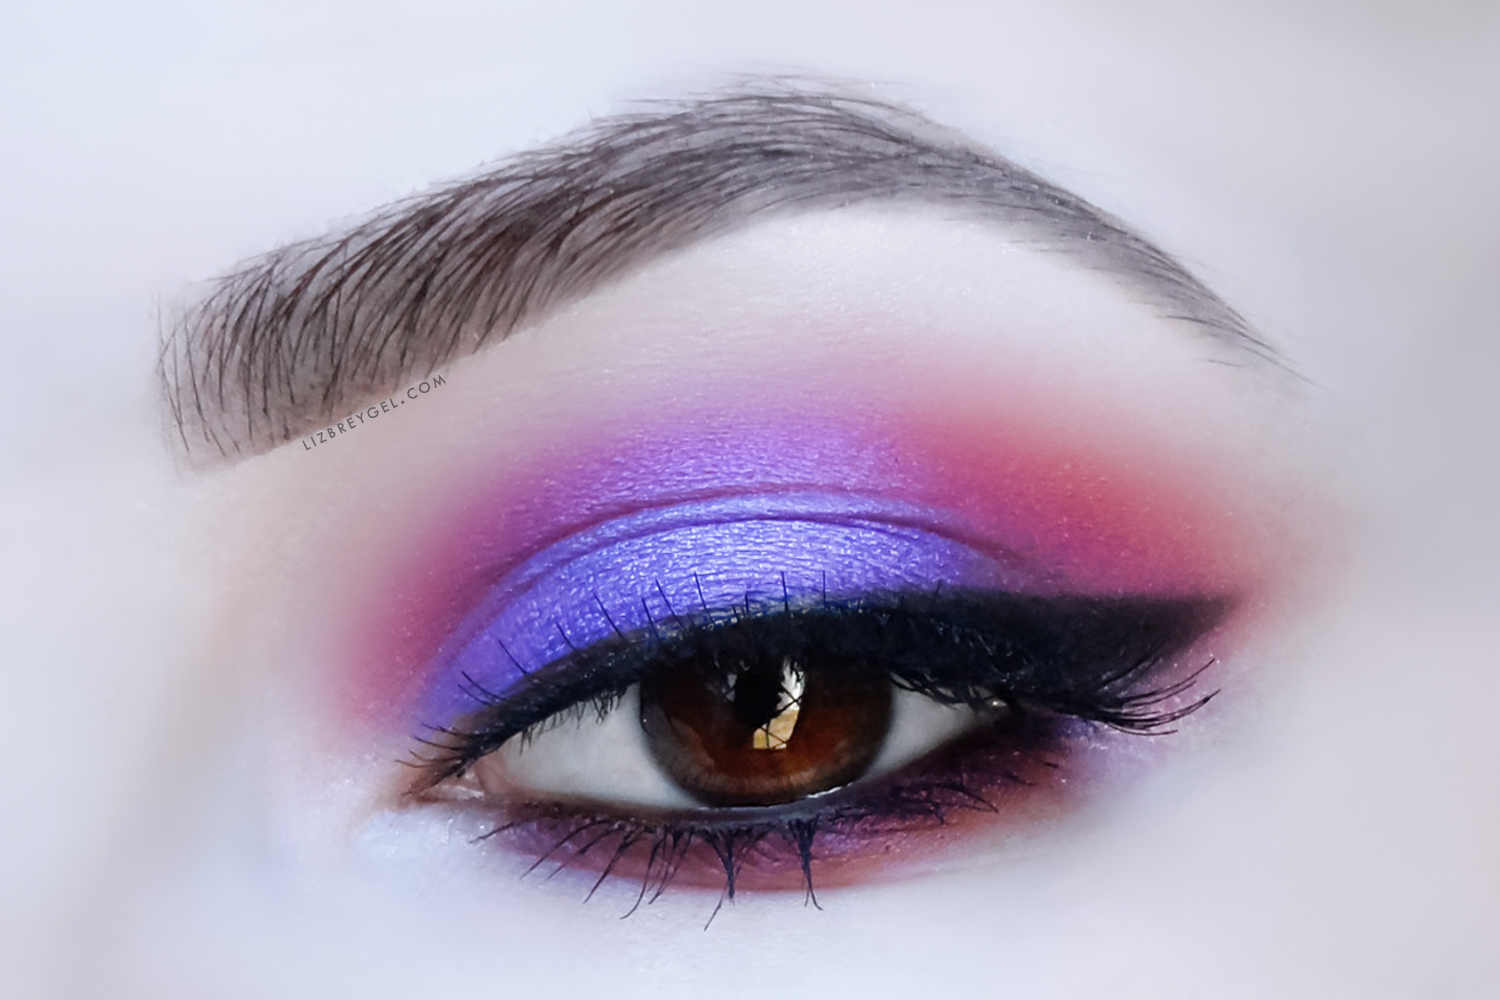 a close up picture of an eye with a dramatic smokey eye makeup look